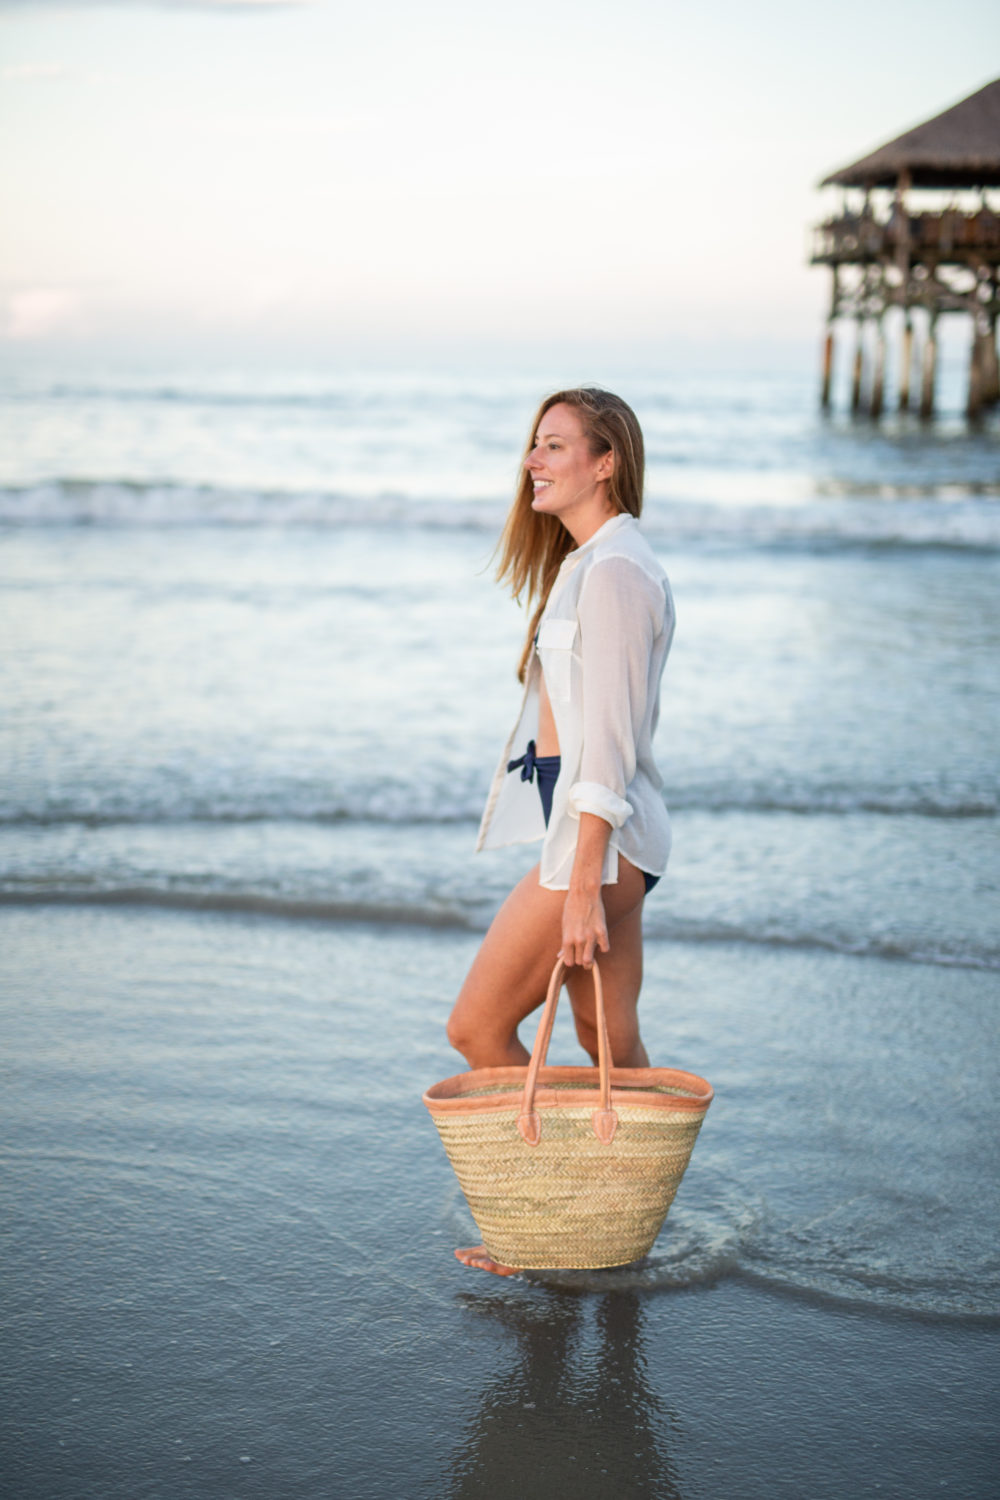 What to Pack in a Beach Bag: 20 Beach Essentials, Wearing Navy High Waisted Swimsuit, White Linen Shirt and Woven Straw Beach Bag | Sunshine Style